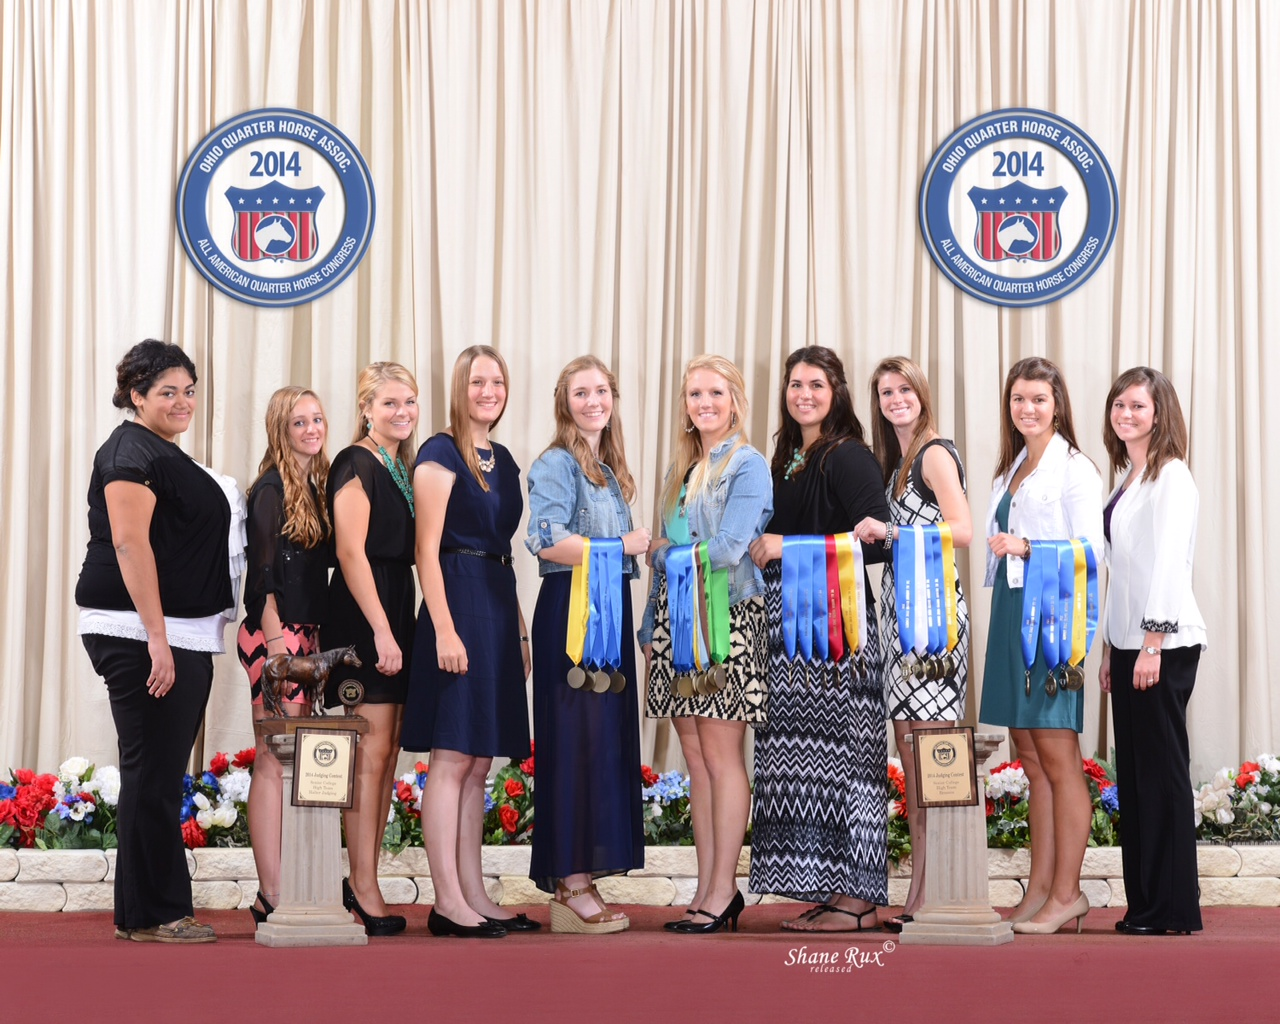 2014 Horse Judging Team Congress